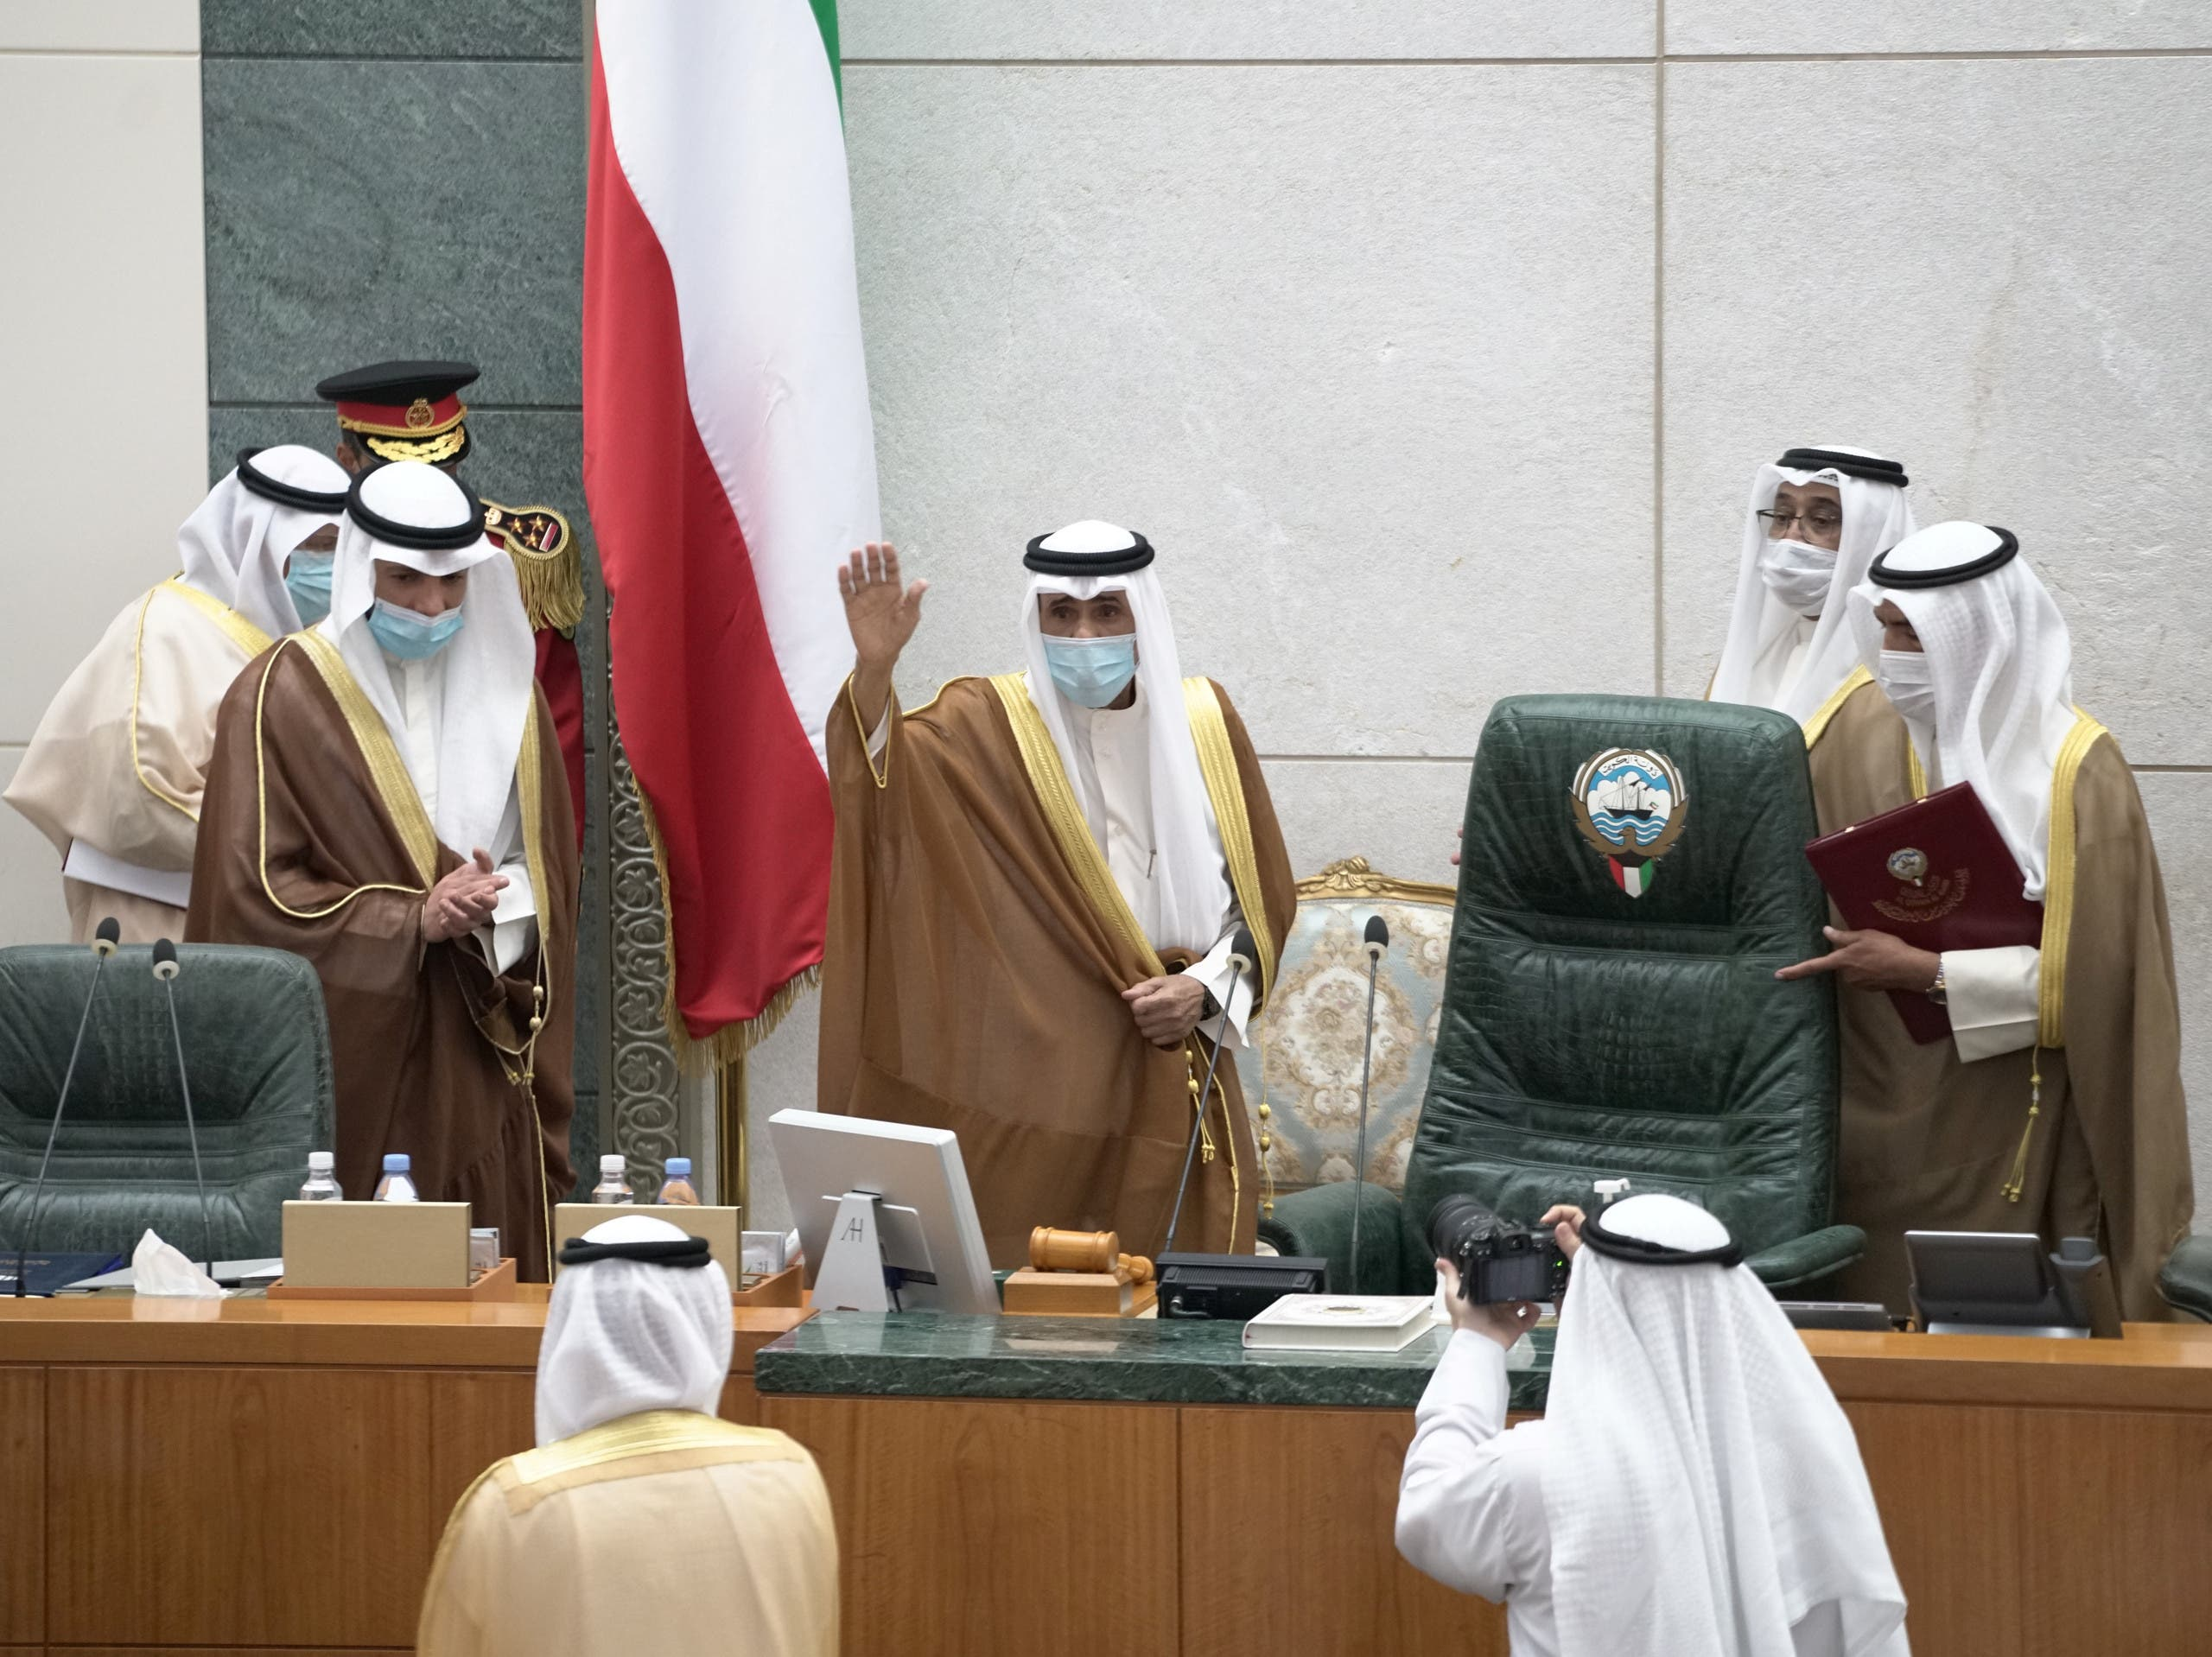 Kuwait's new Emir Sheikh Nawaf al-Ahmad al-Sabah waves as he takes the oath of office at the parliament. (Reuters)